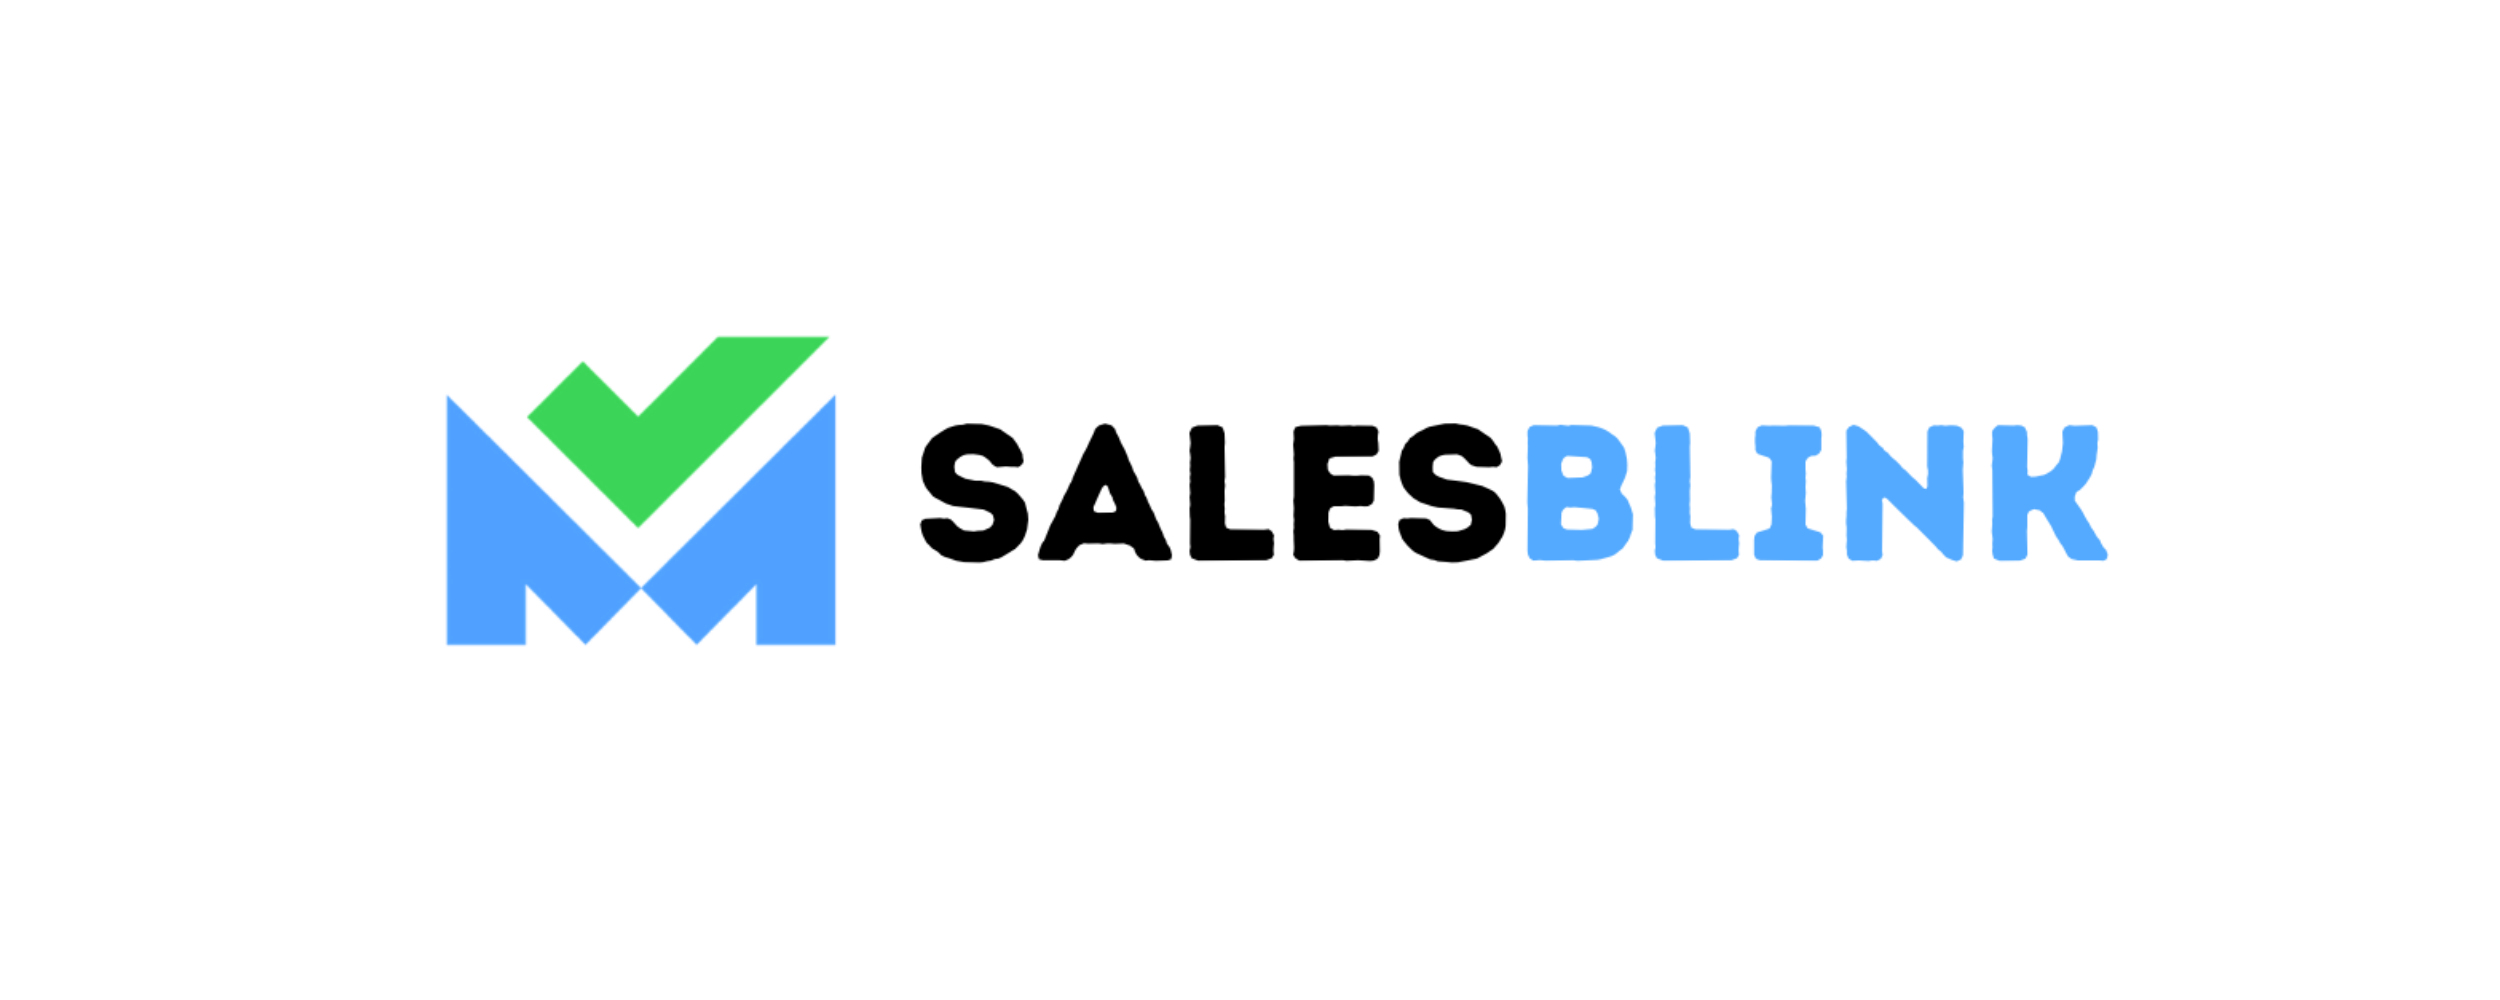 A logo for a company called Salesblink. Showing a mail icon with the text.